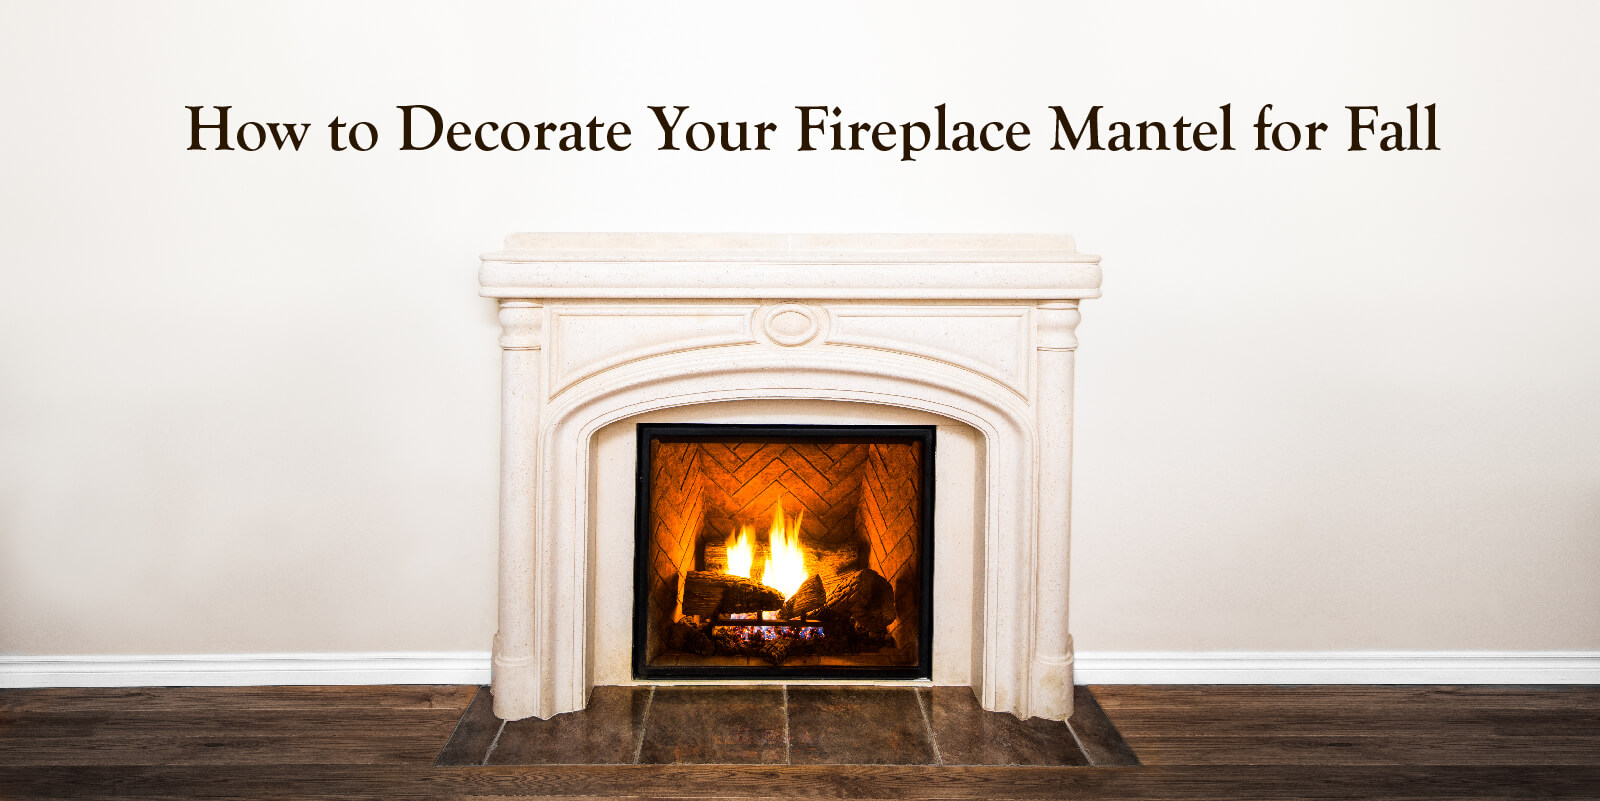 How to decorate your fireplace mantel for fall